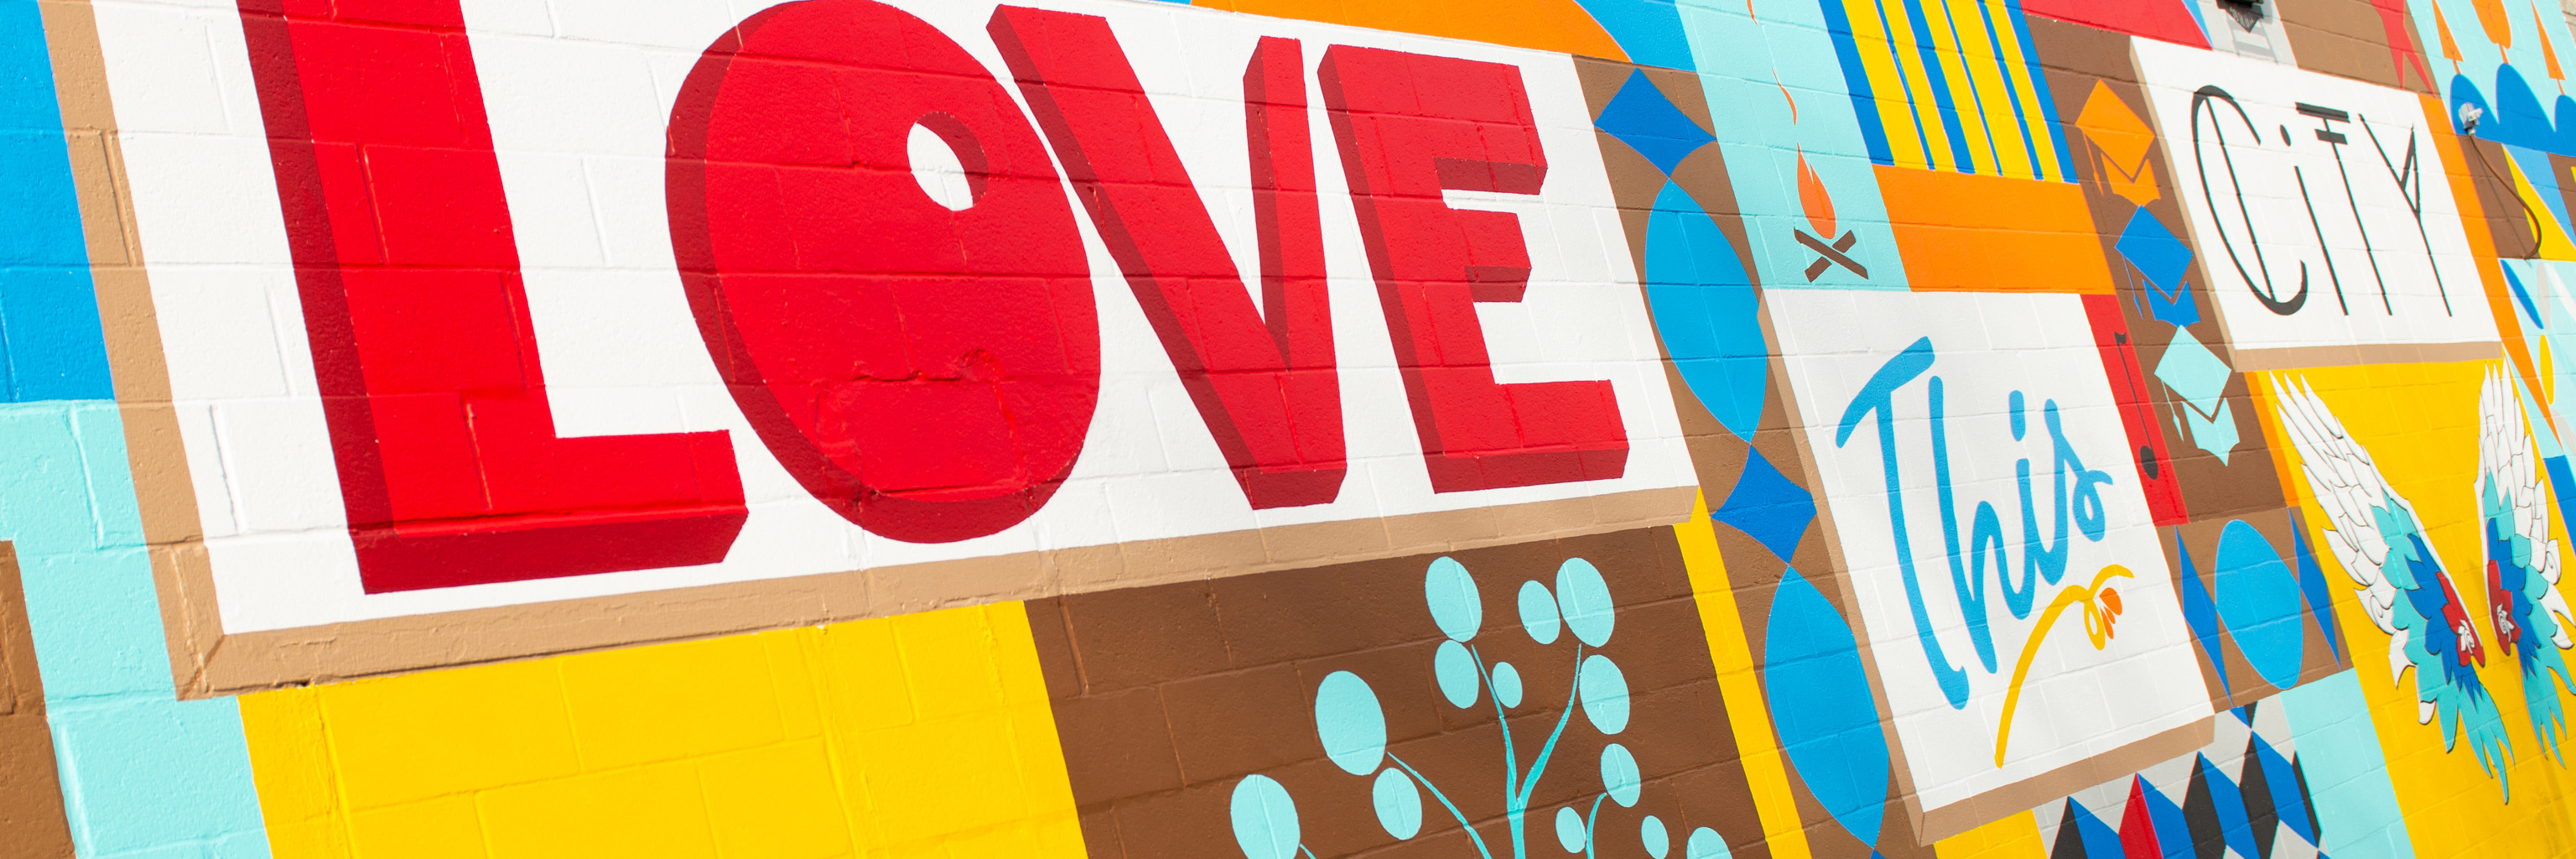 """Love this city"" mural in Bloomington, Indiana"